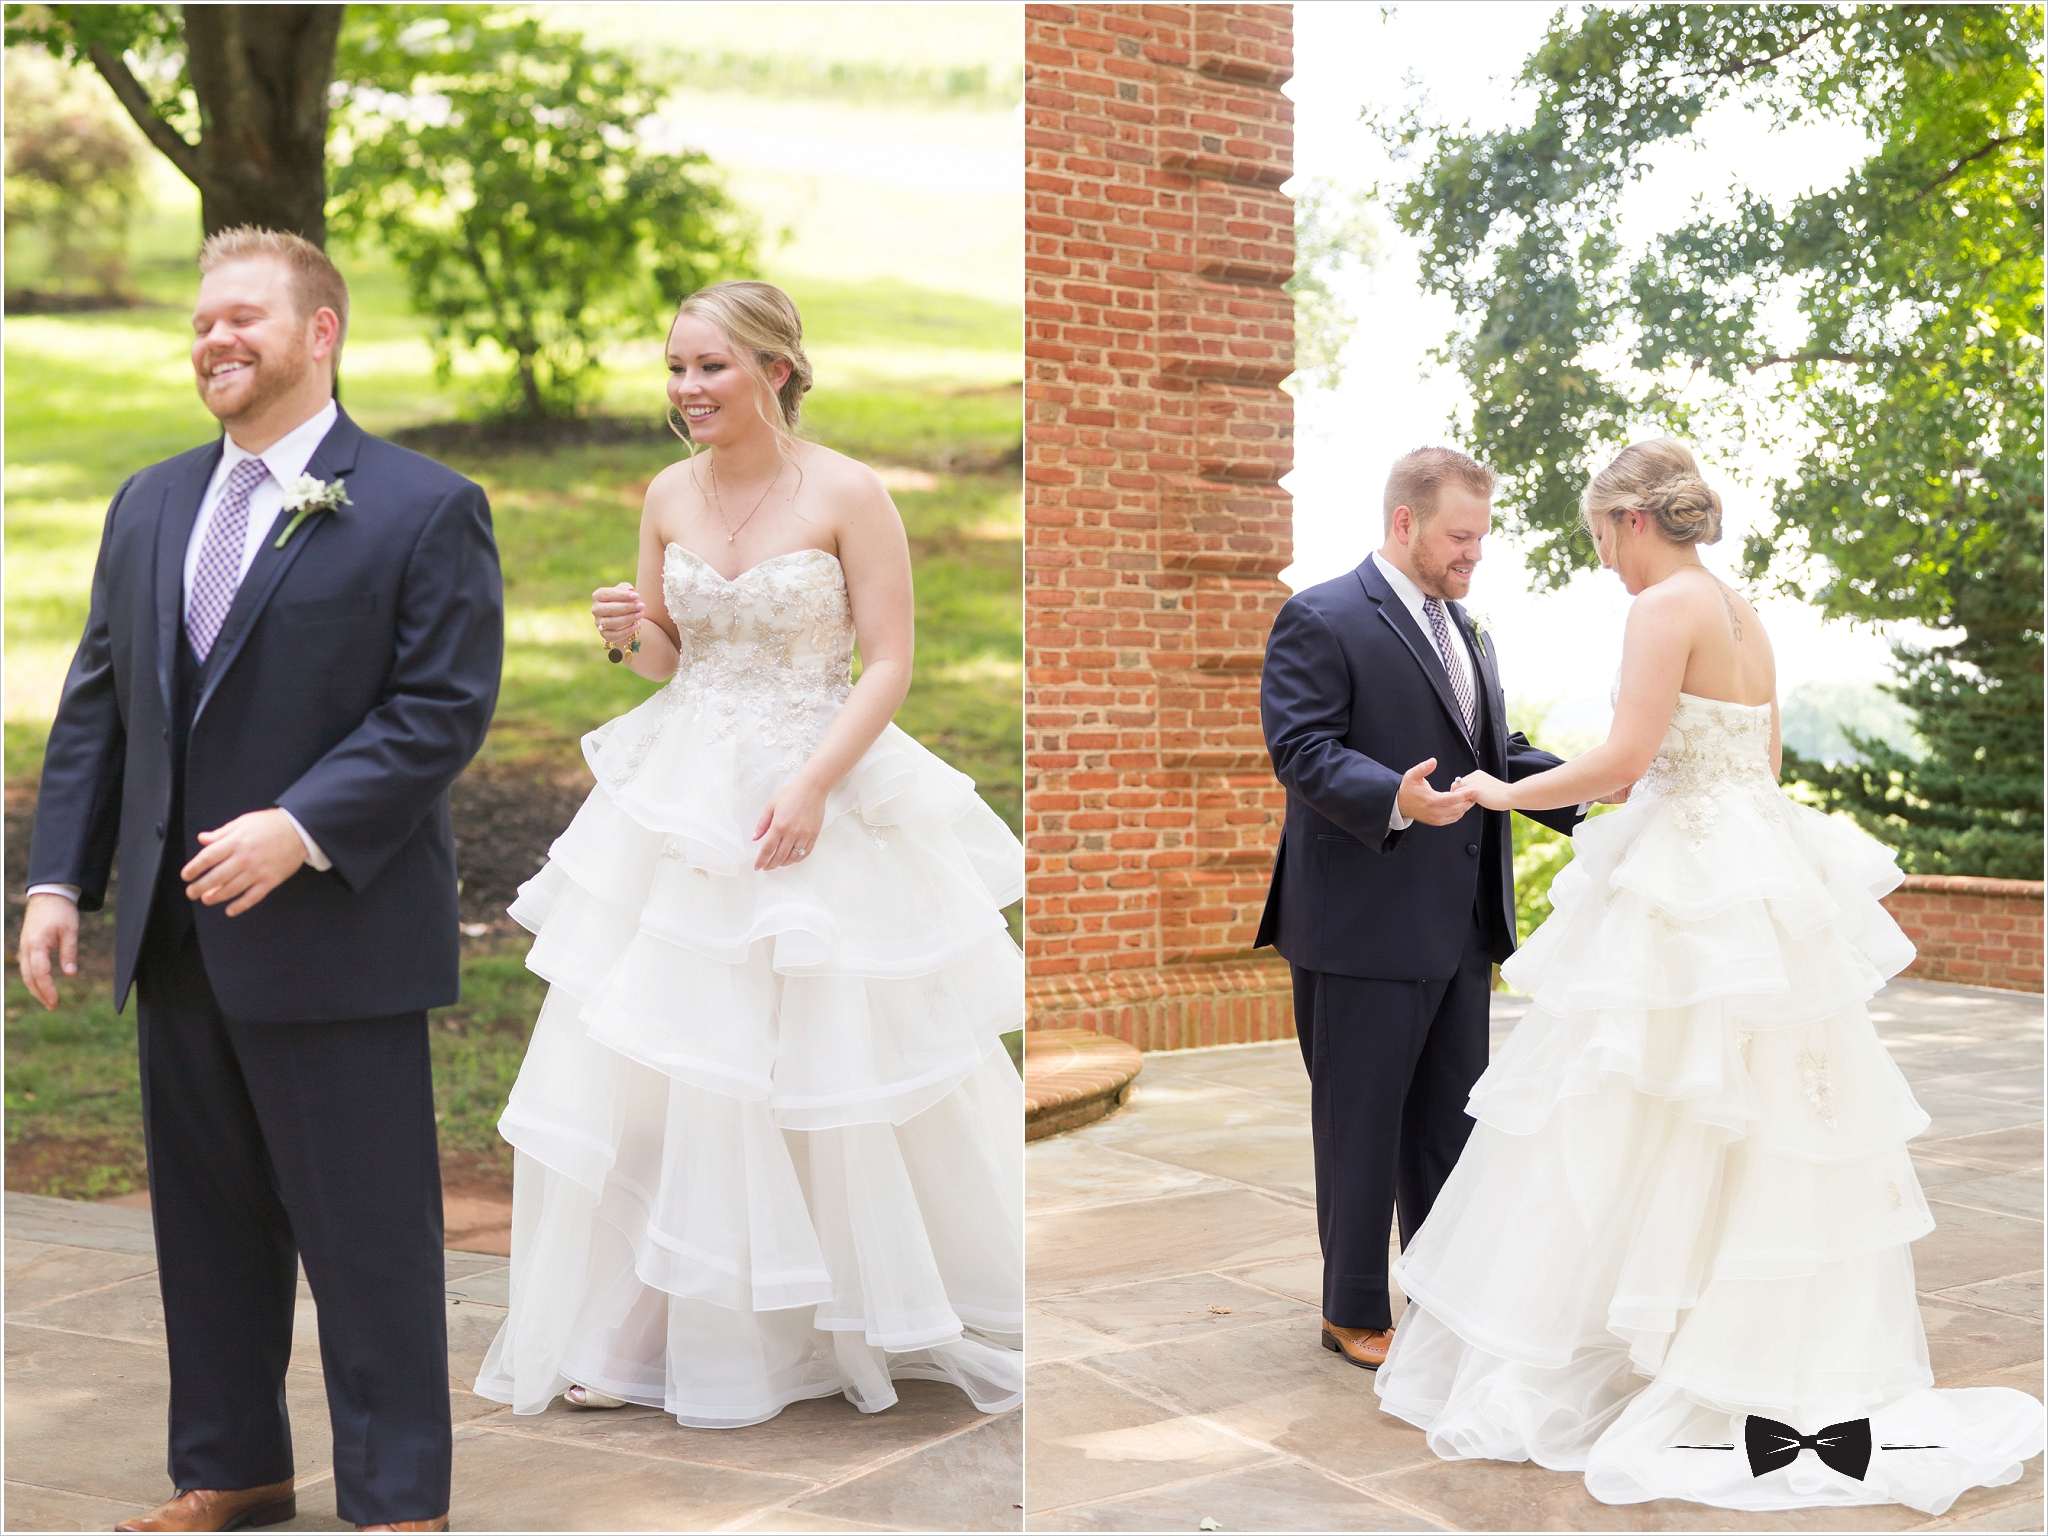 Brianna dreyer wedding